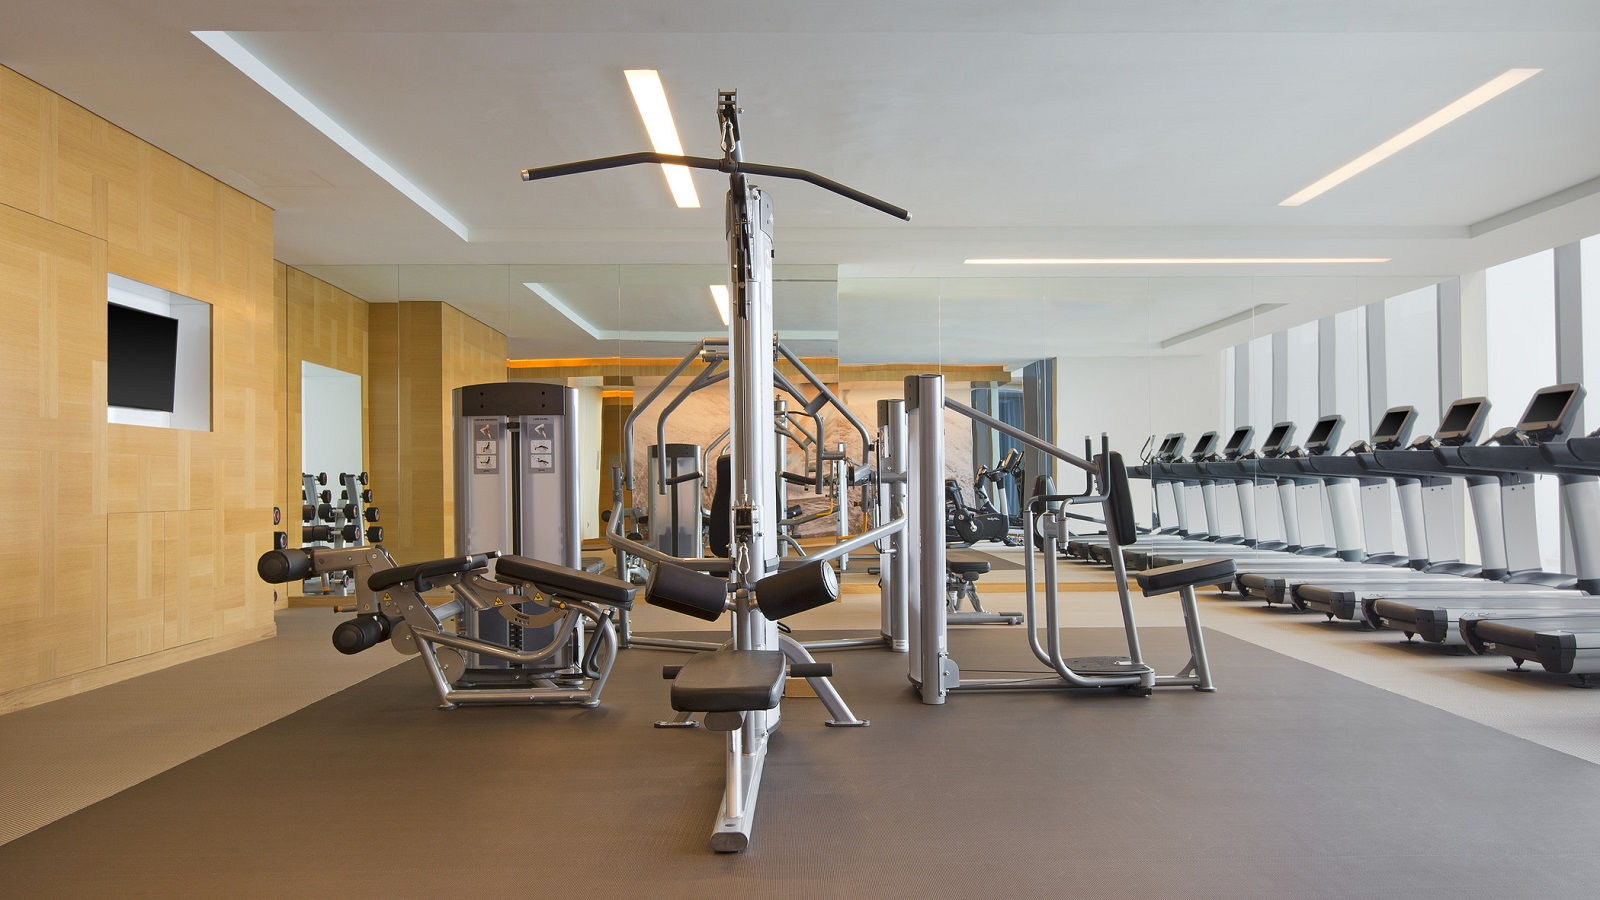 Singapore hotel gym westinworkout fitness studio the for Gimnasio fitness studio